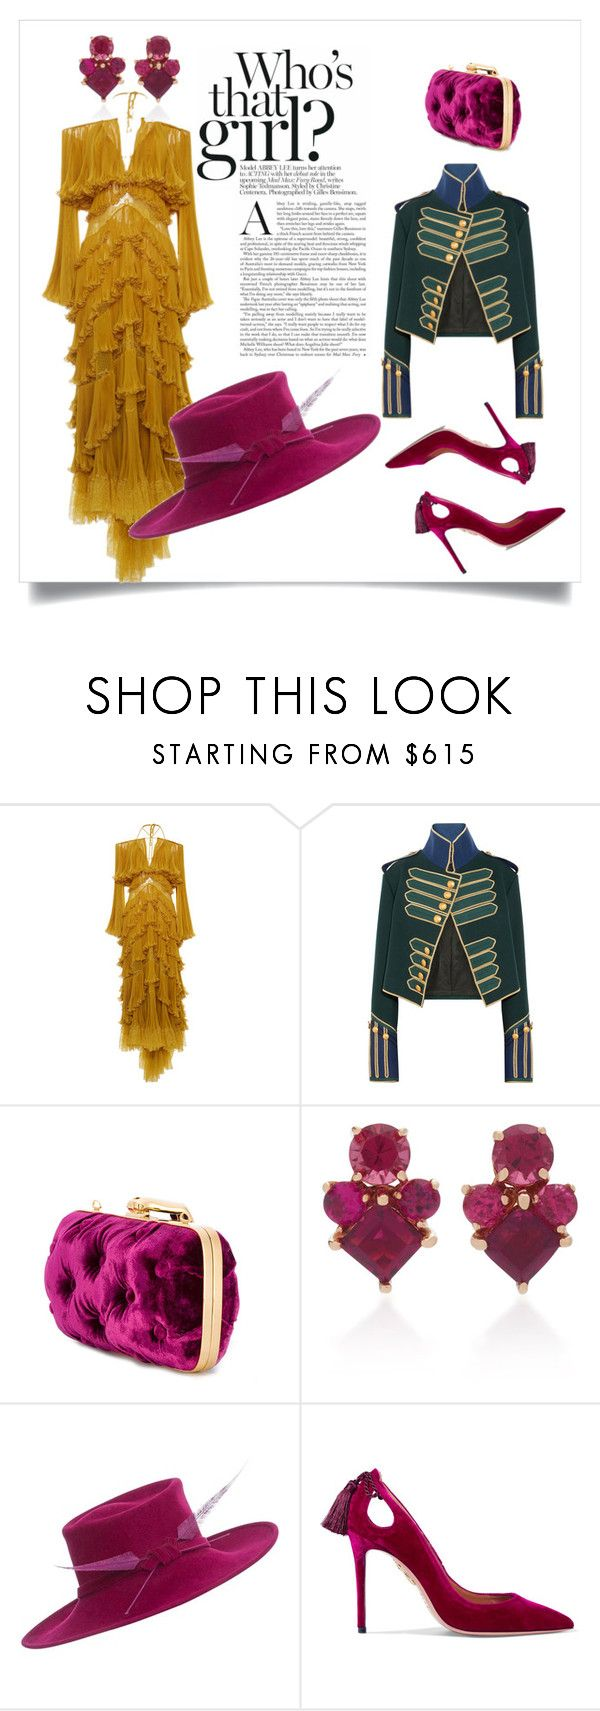 """""""Untitled #135"""" by gonal ❤ liked on Polyvore featuring Roberto Cavalli, Burberry, Benedetta Bruzziches, Jane Taylor, Philip Treacy, Aquazzura, polyvorecommunity, polyvoreeditorial, polyvorefashion and polyvoreset"""